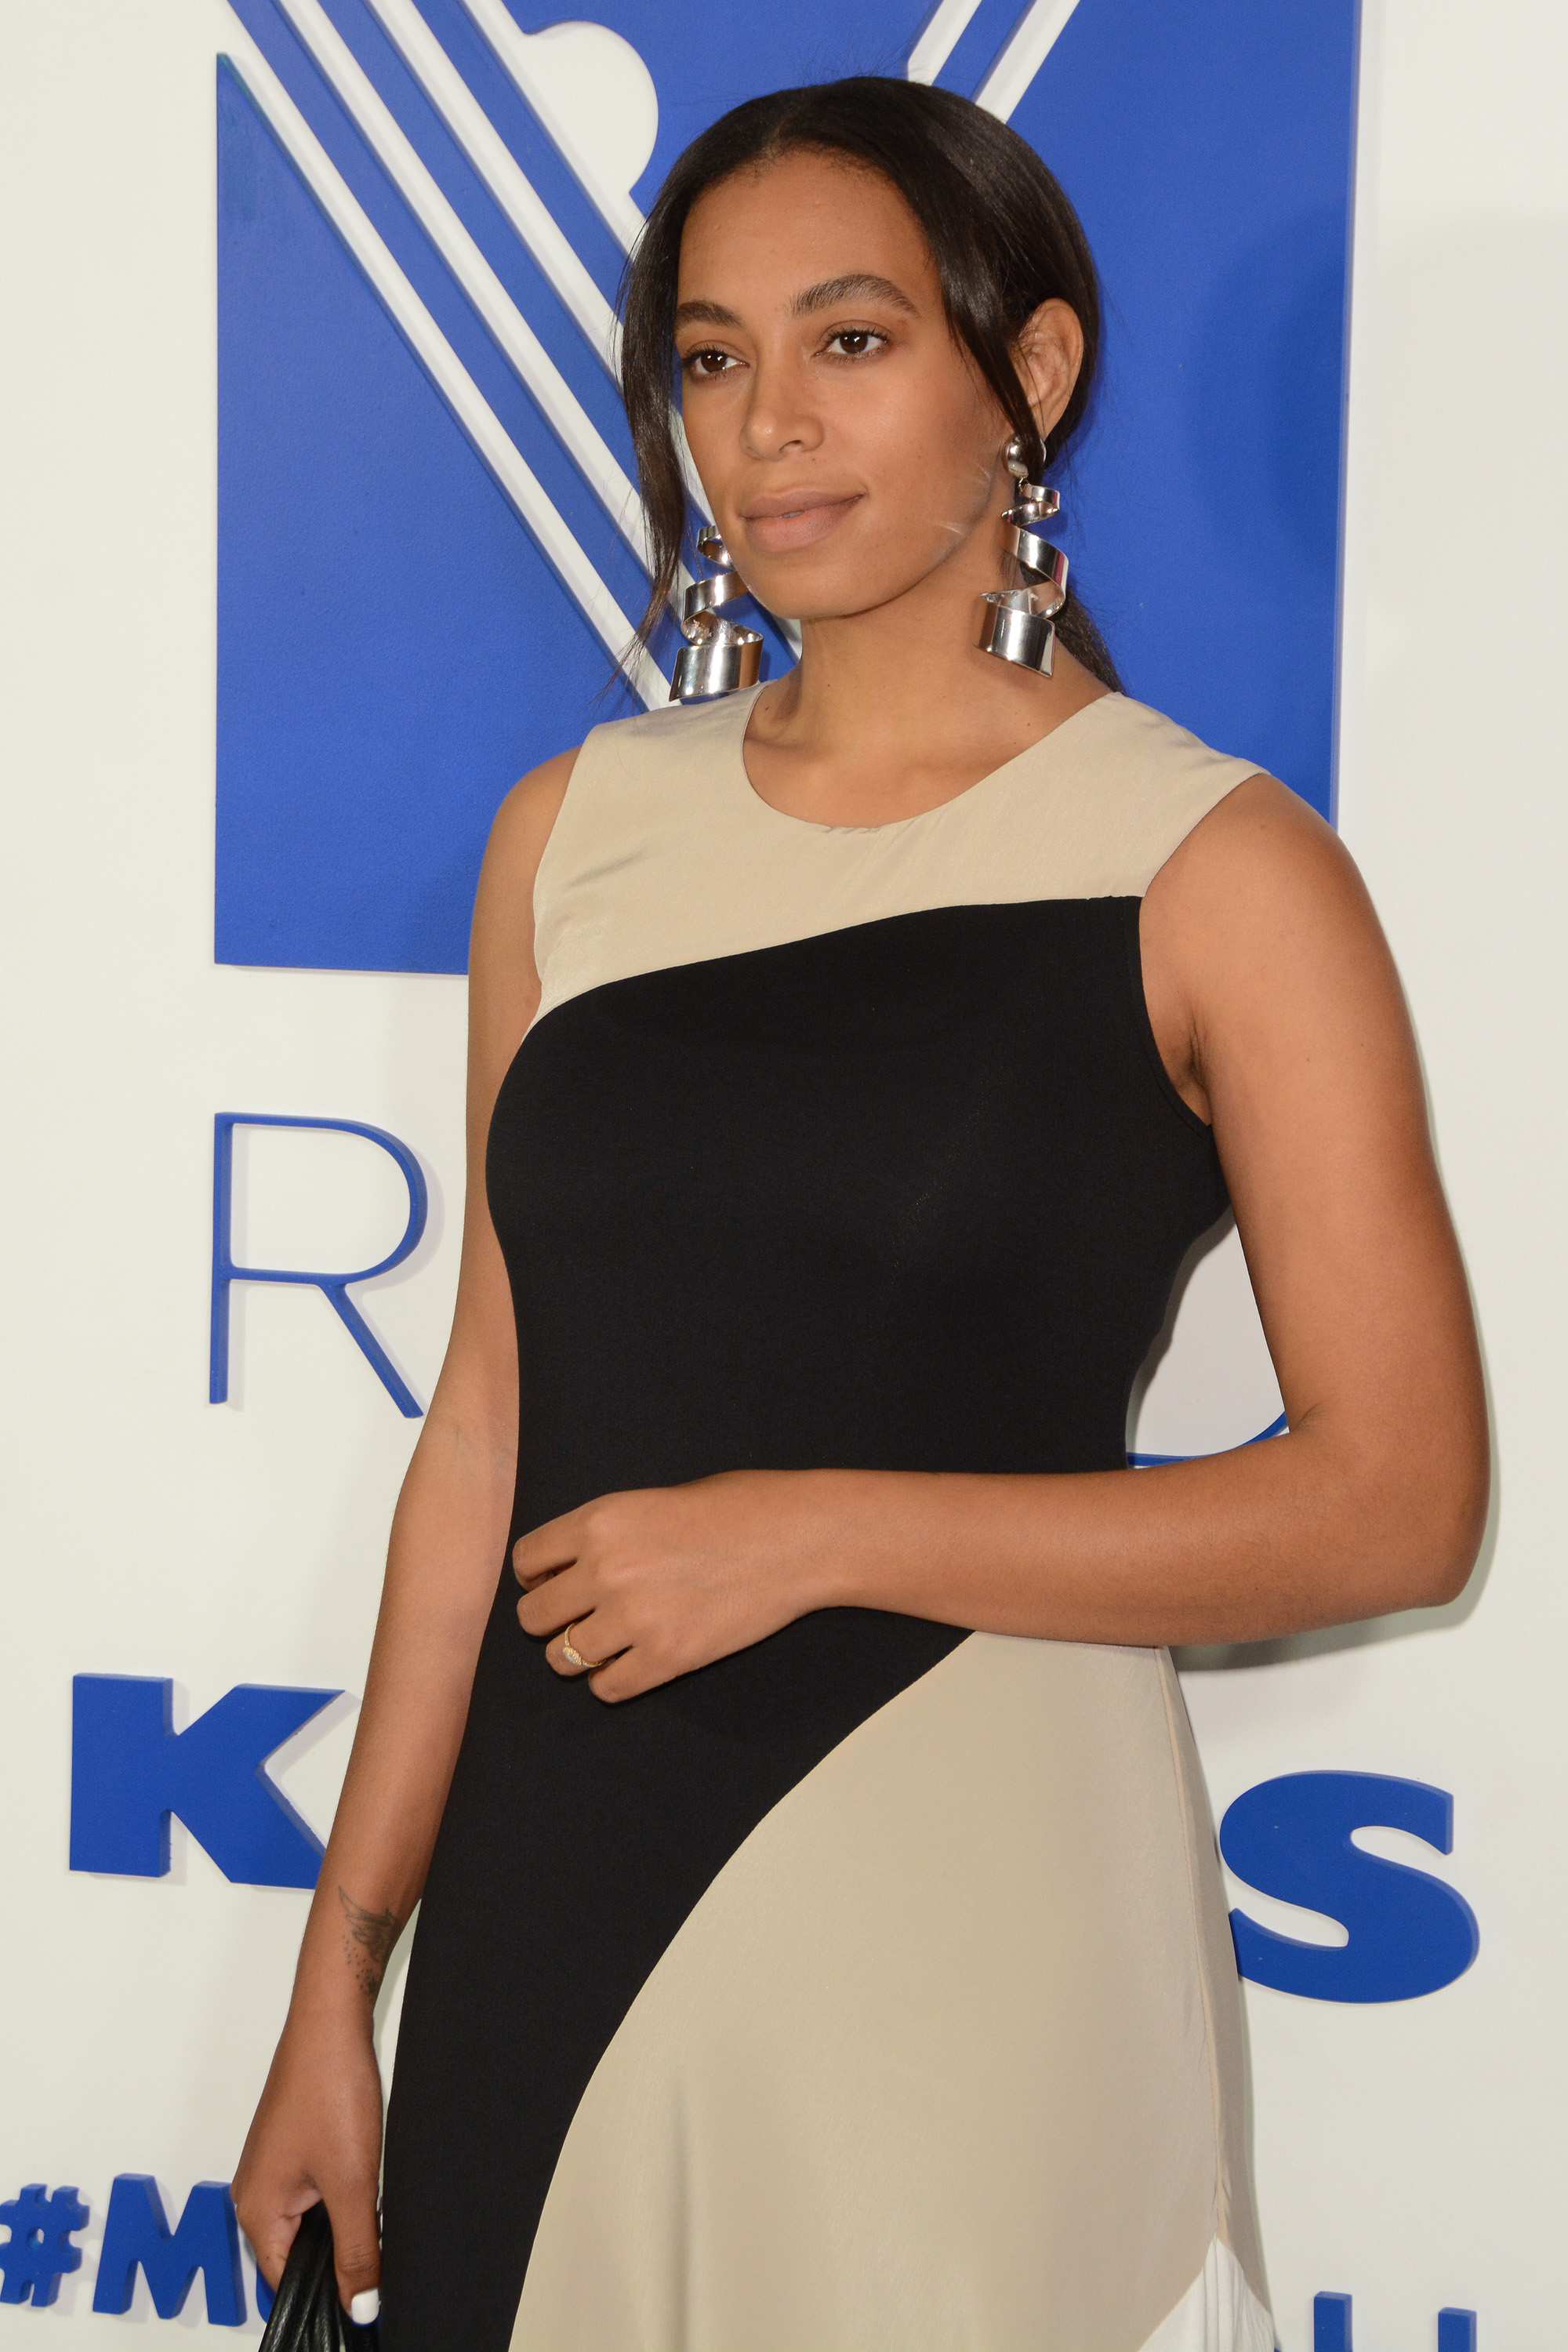 REED and Kohl's Collection Launch Dinner - Red Carpet Arrivals                                    Featuring: Solange Knowles                  Where: New York, New York, United States                  When: 20 Apr 2016                  Credit: Ivan Nikolov/WENN.com